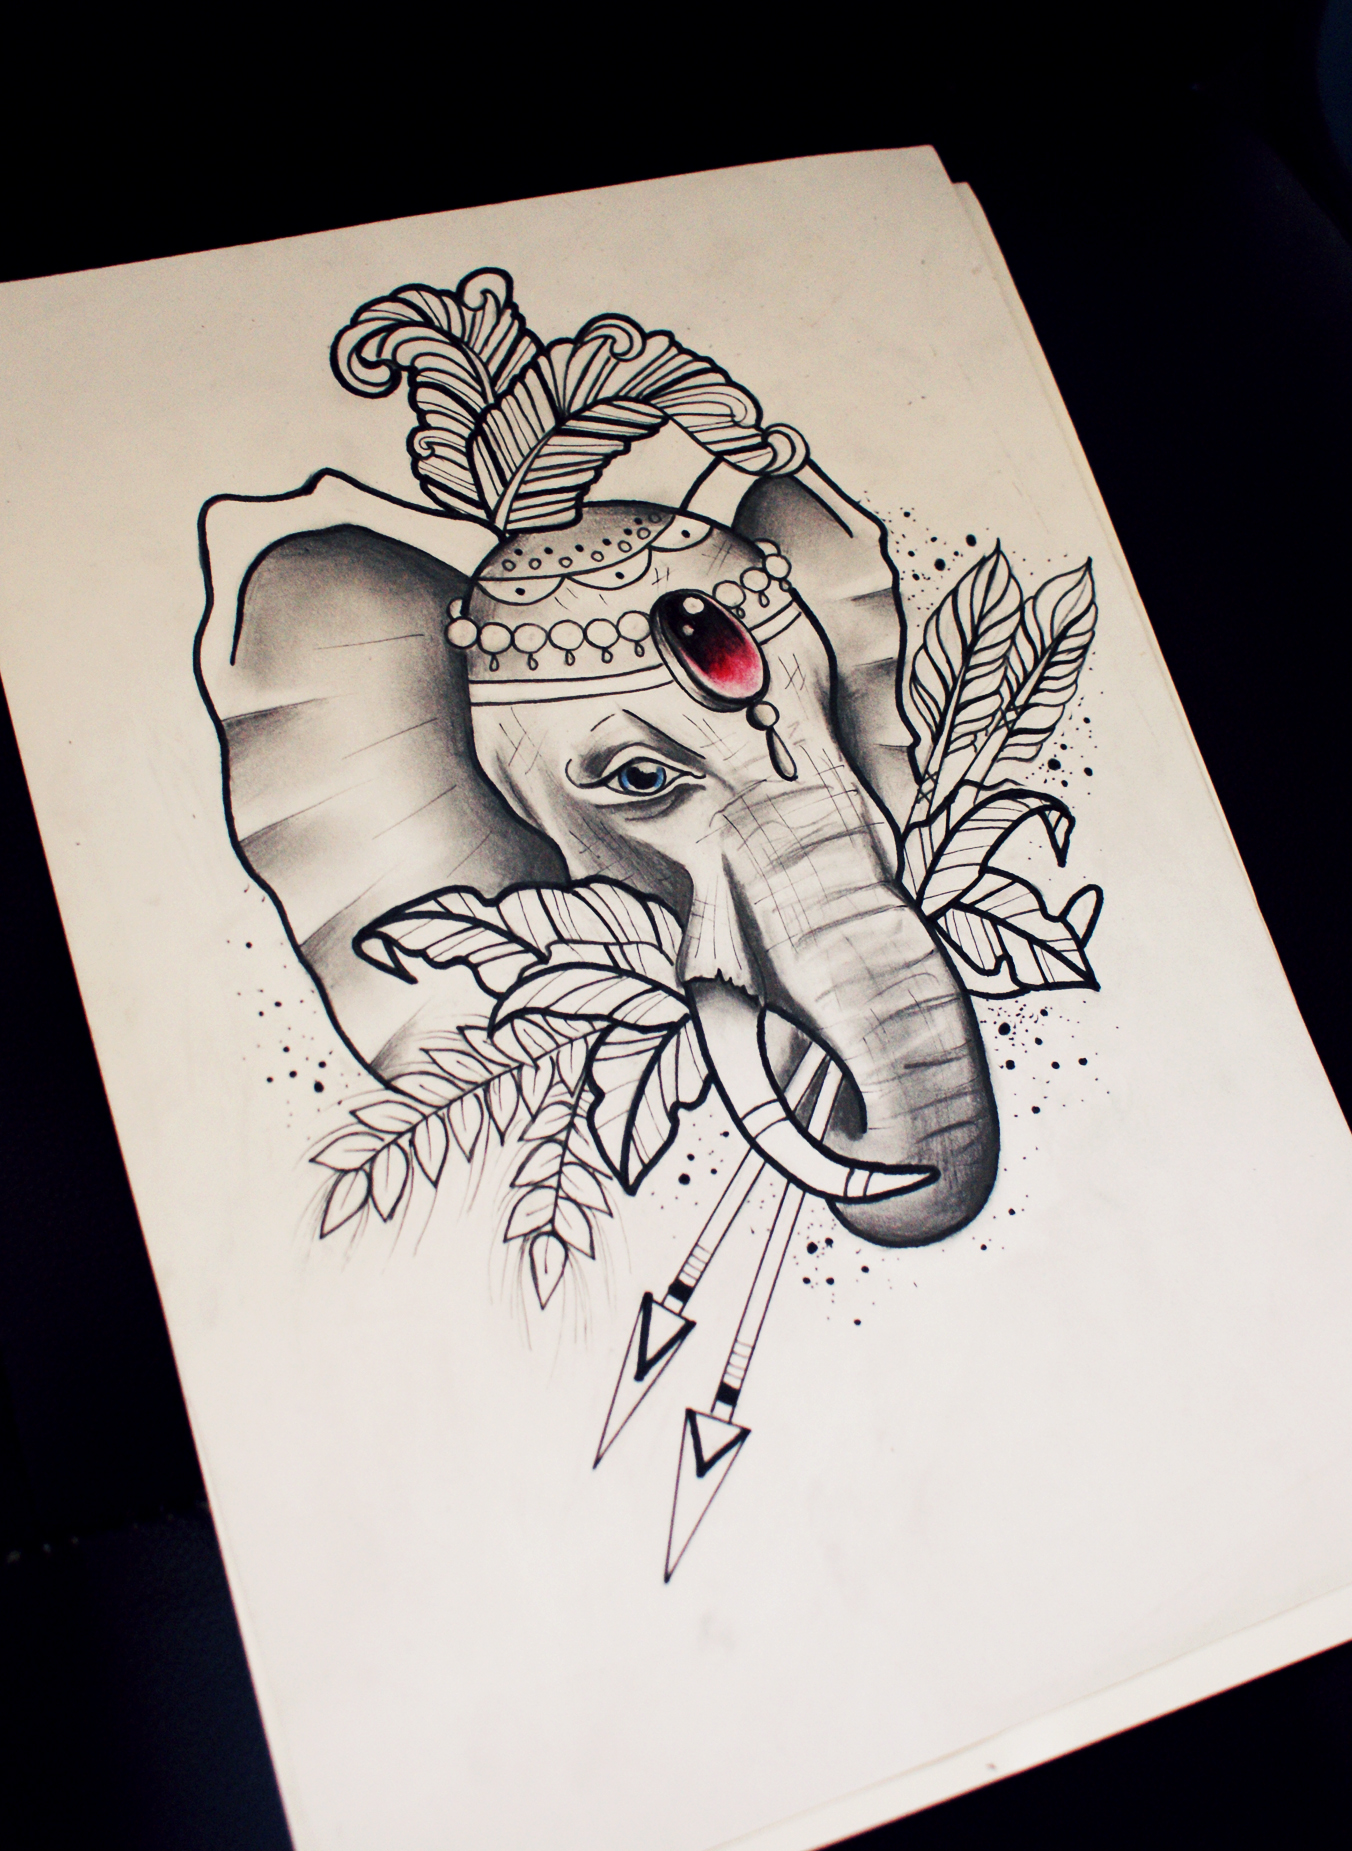 Dlue-eyed circus elephant with red gem decoration keeping arrows tattoo design